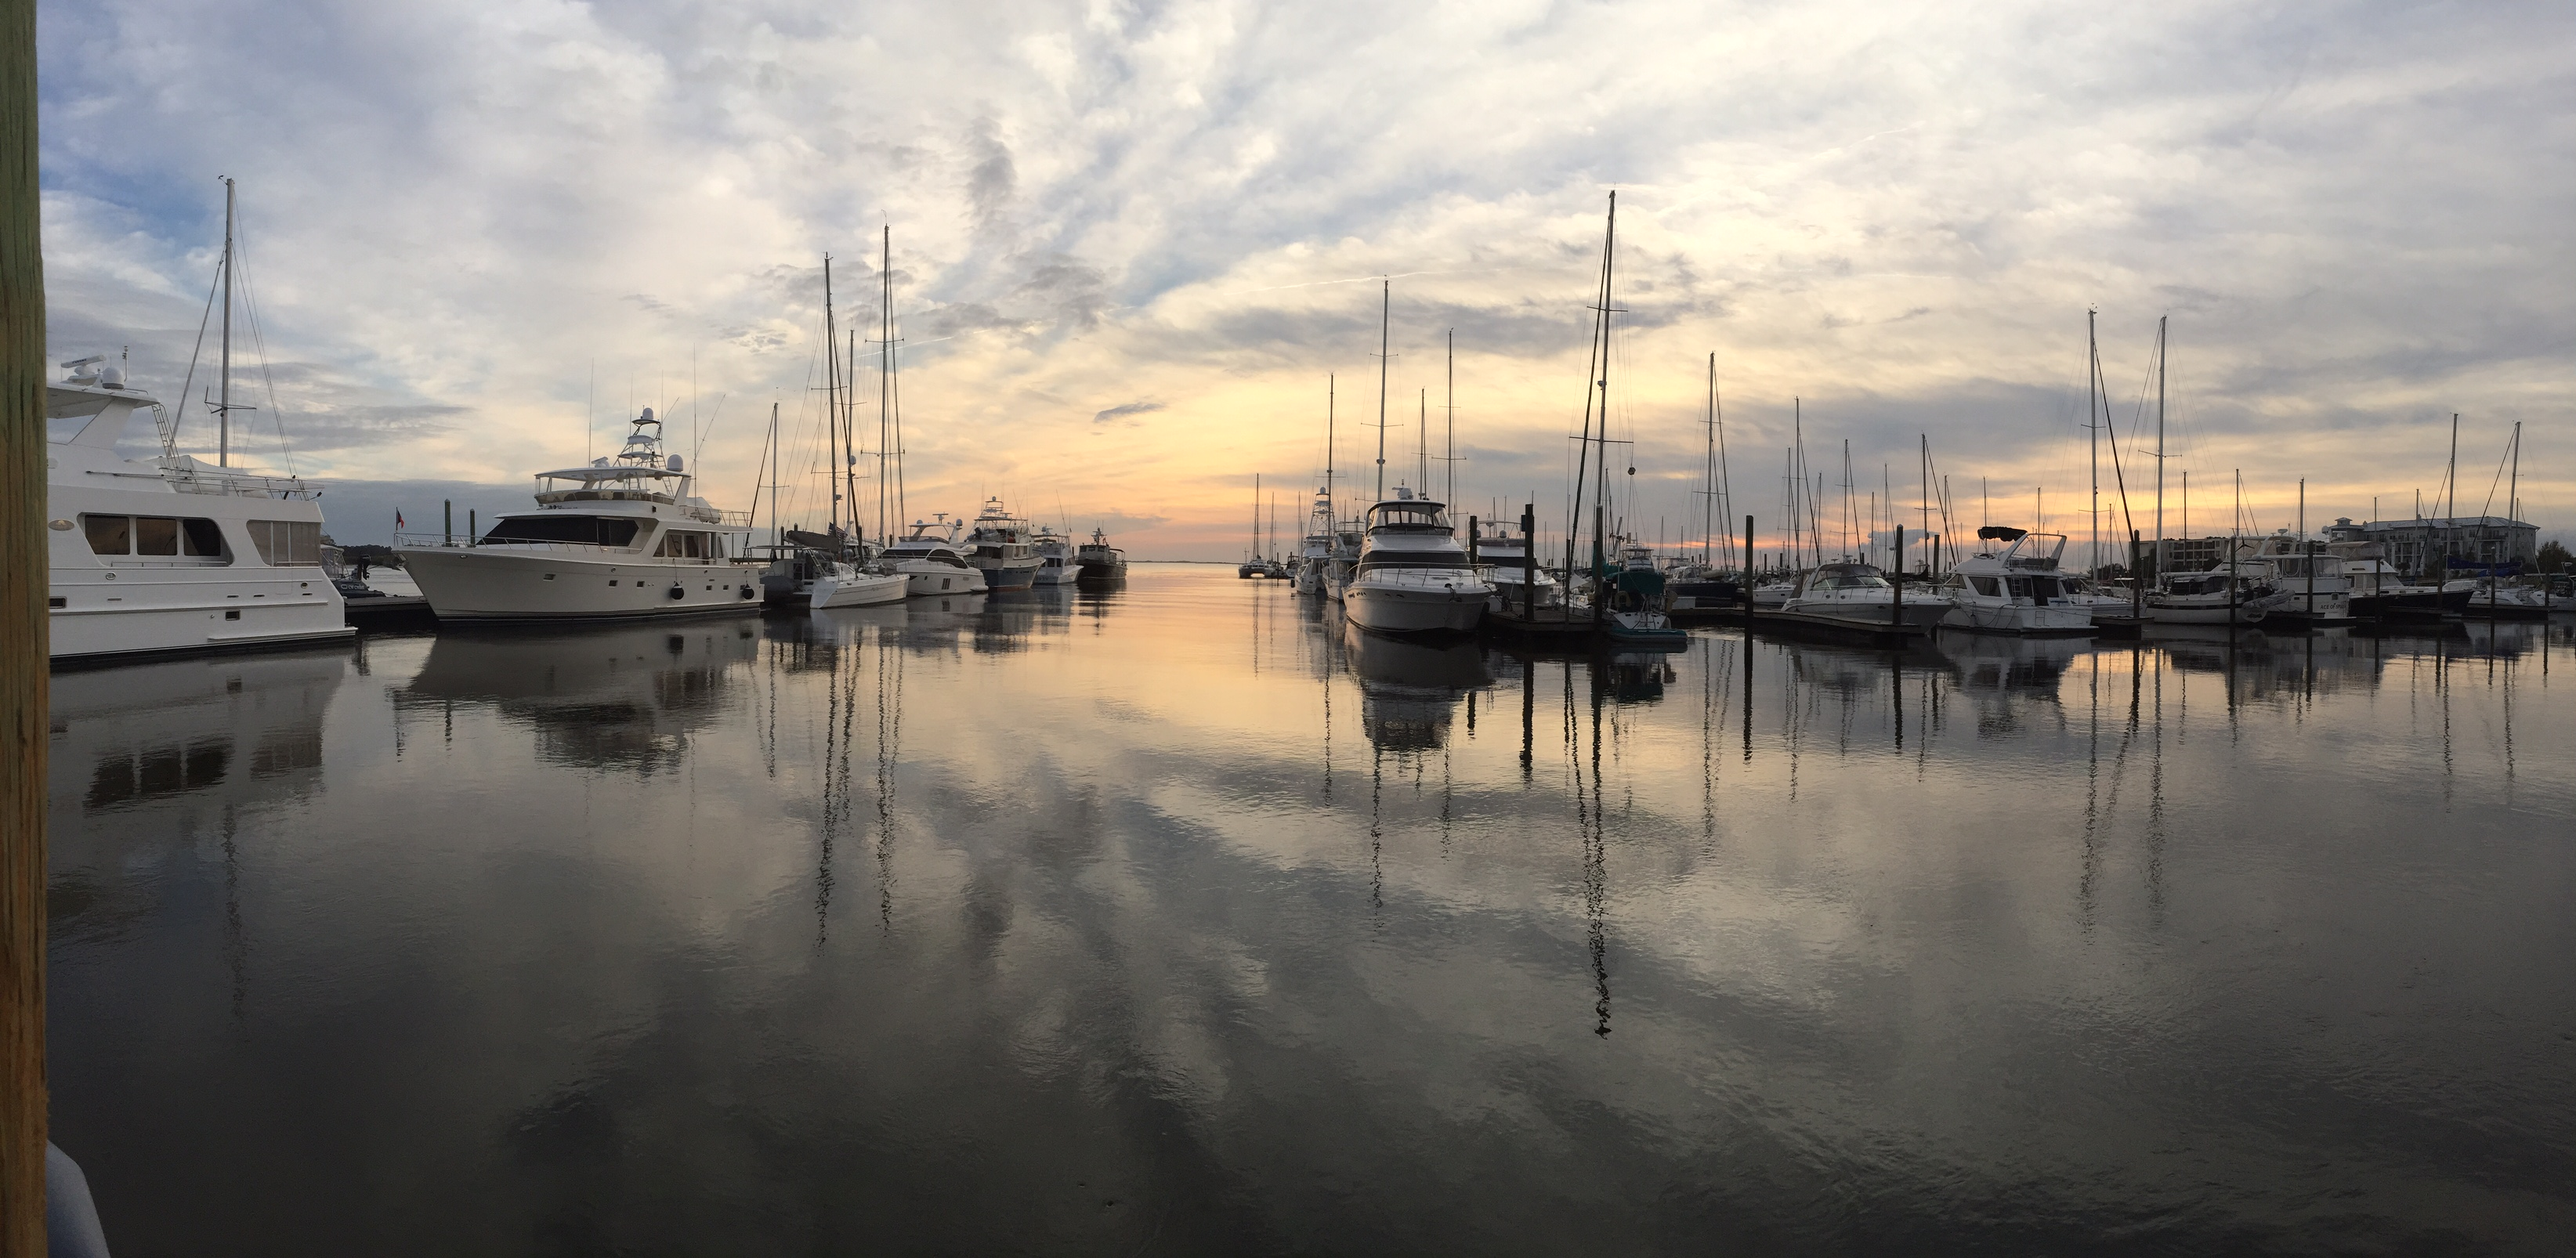 Sun rising over the water and boats at Morningstar Marinas Golden Isles